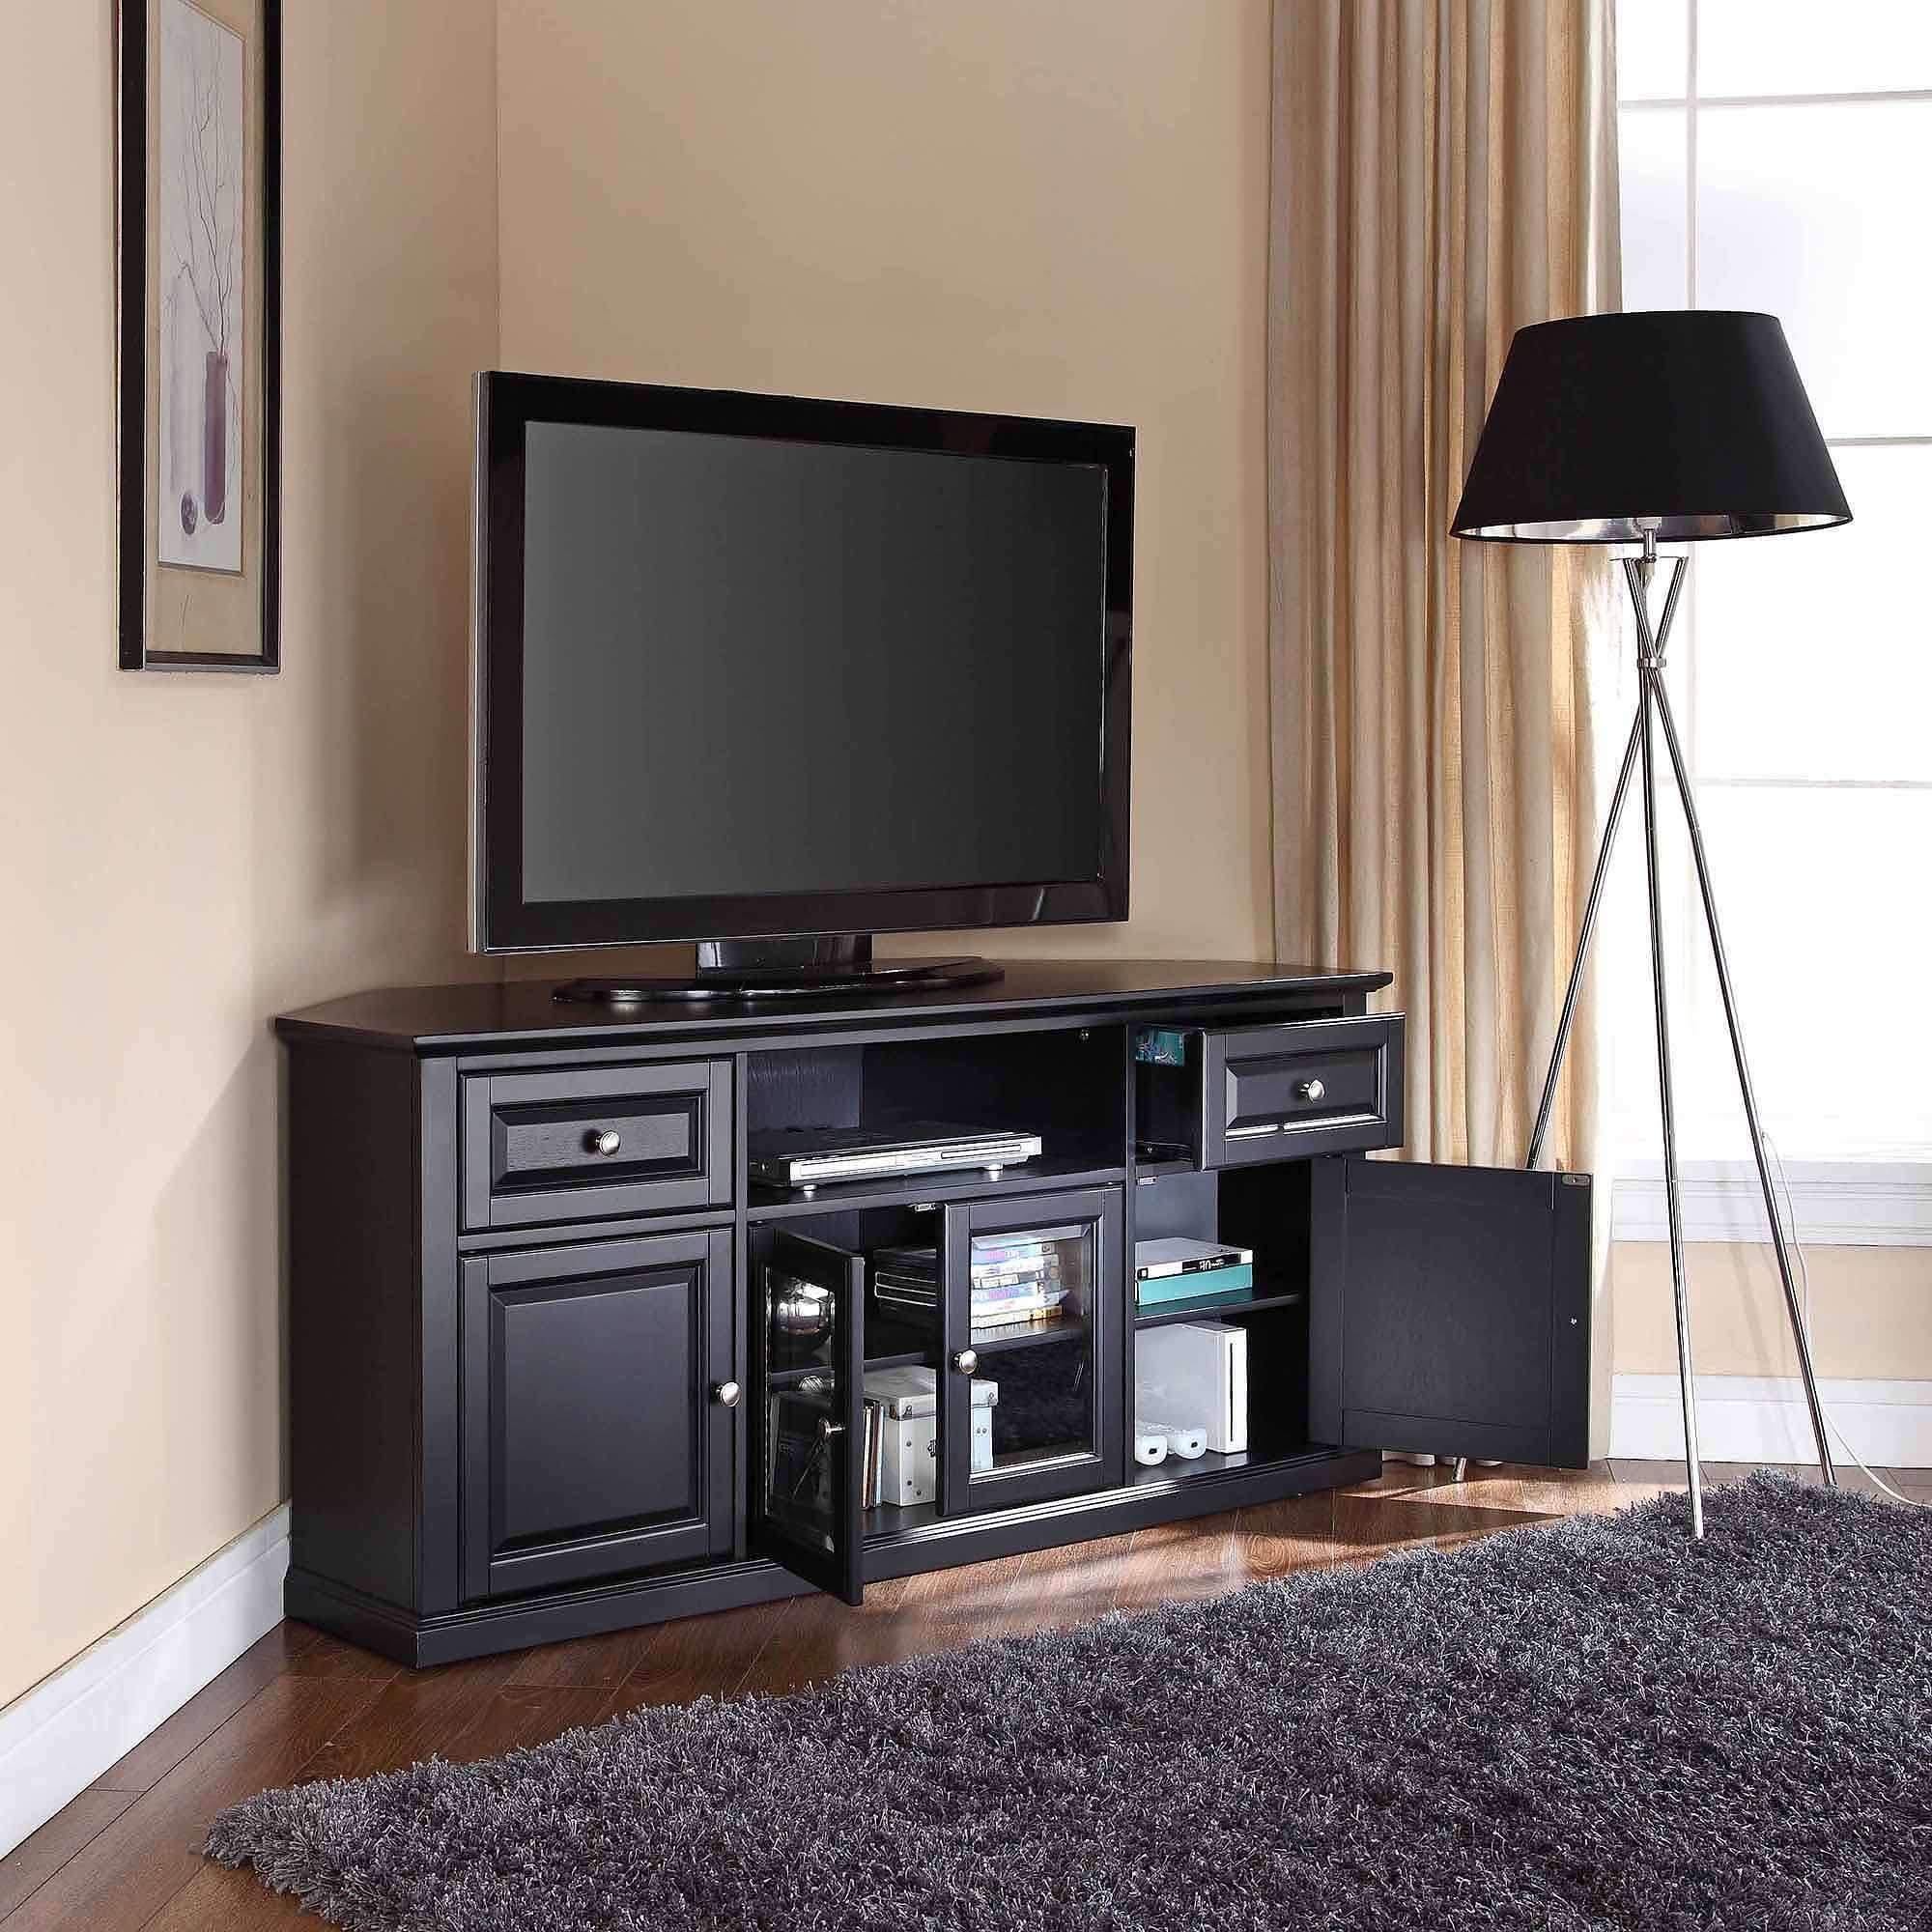 "Crosley Furniture Corner Tv Stand For Tvs Up To 60"" – Walmart With Regard To Black Wood Corner Tv Stands (View 9 of 15)"